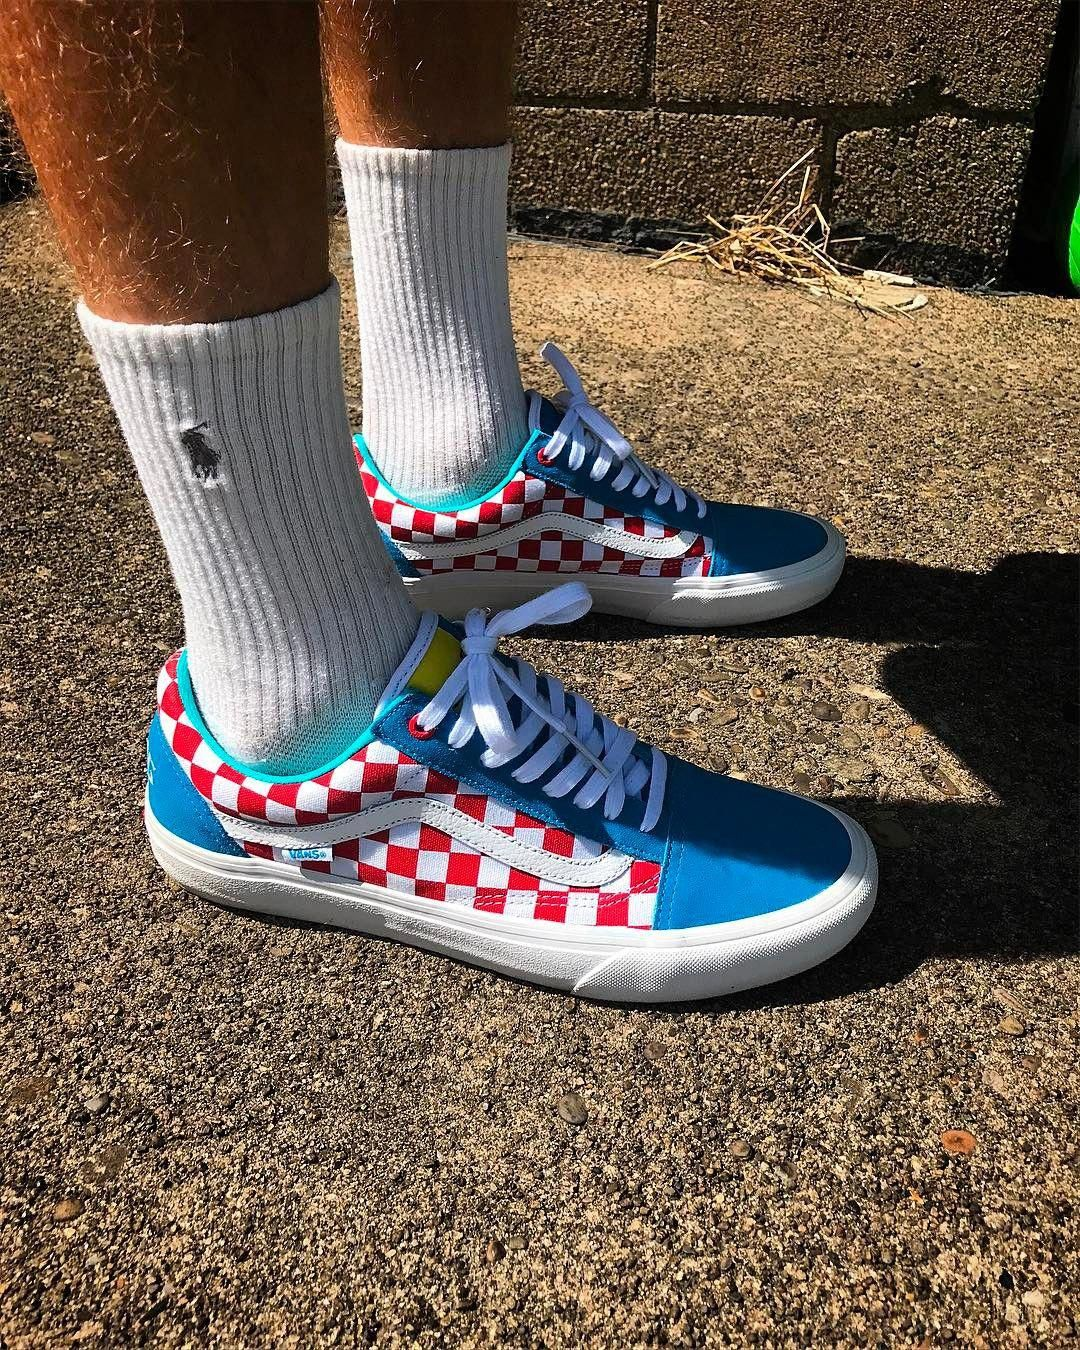 Pro Idee Schuhe Golf Wang X Vans Old Skool Pro Golfshoes Yamaha Golf Carts In